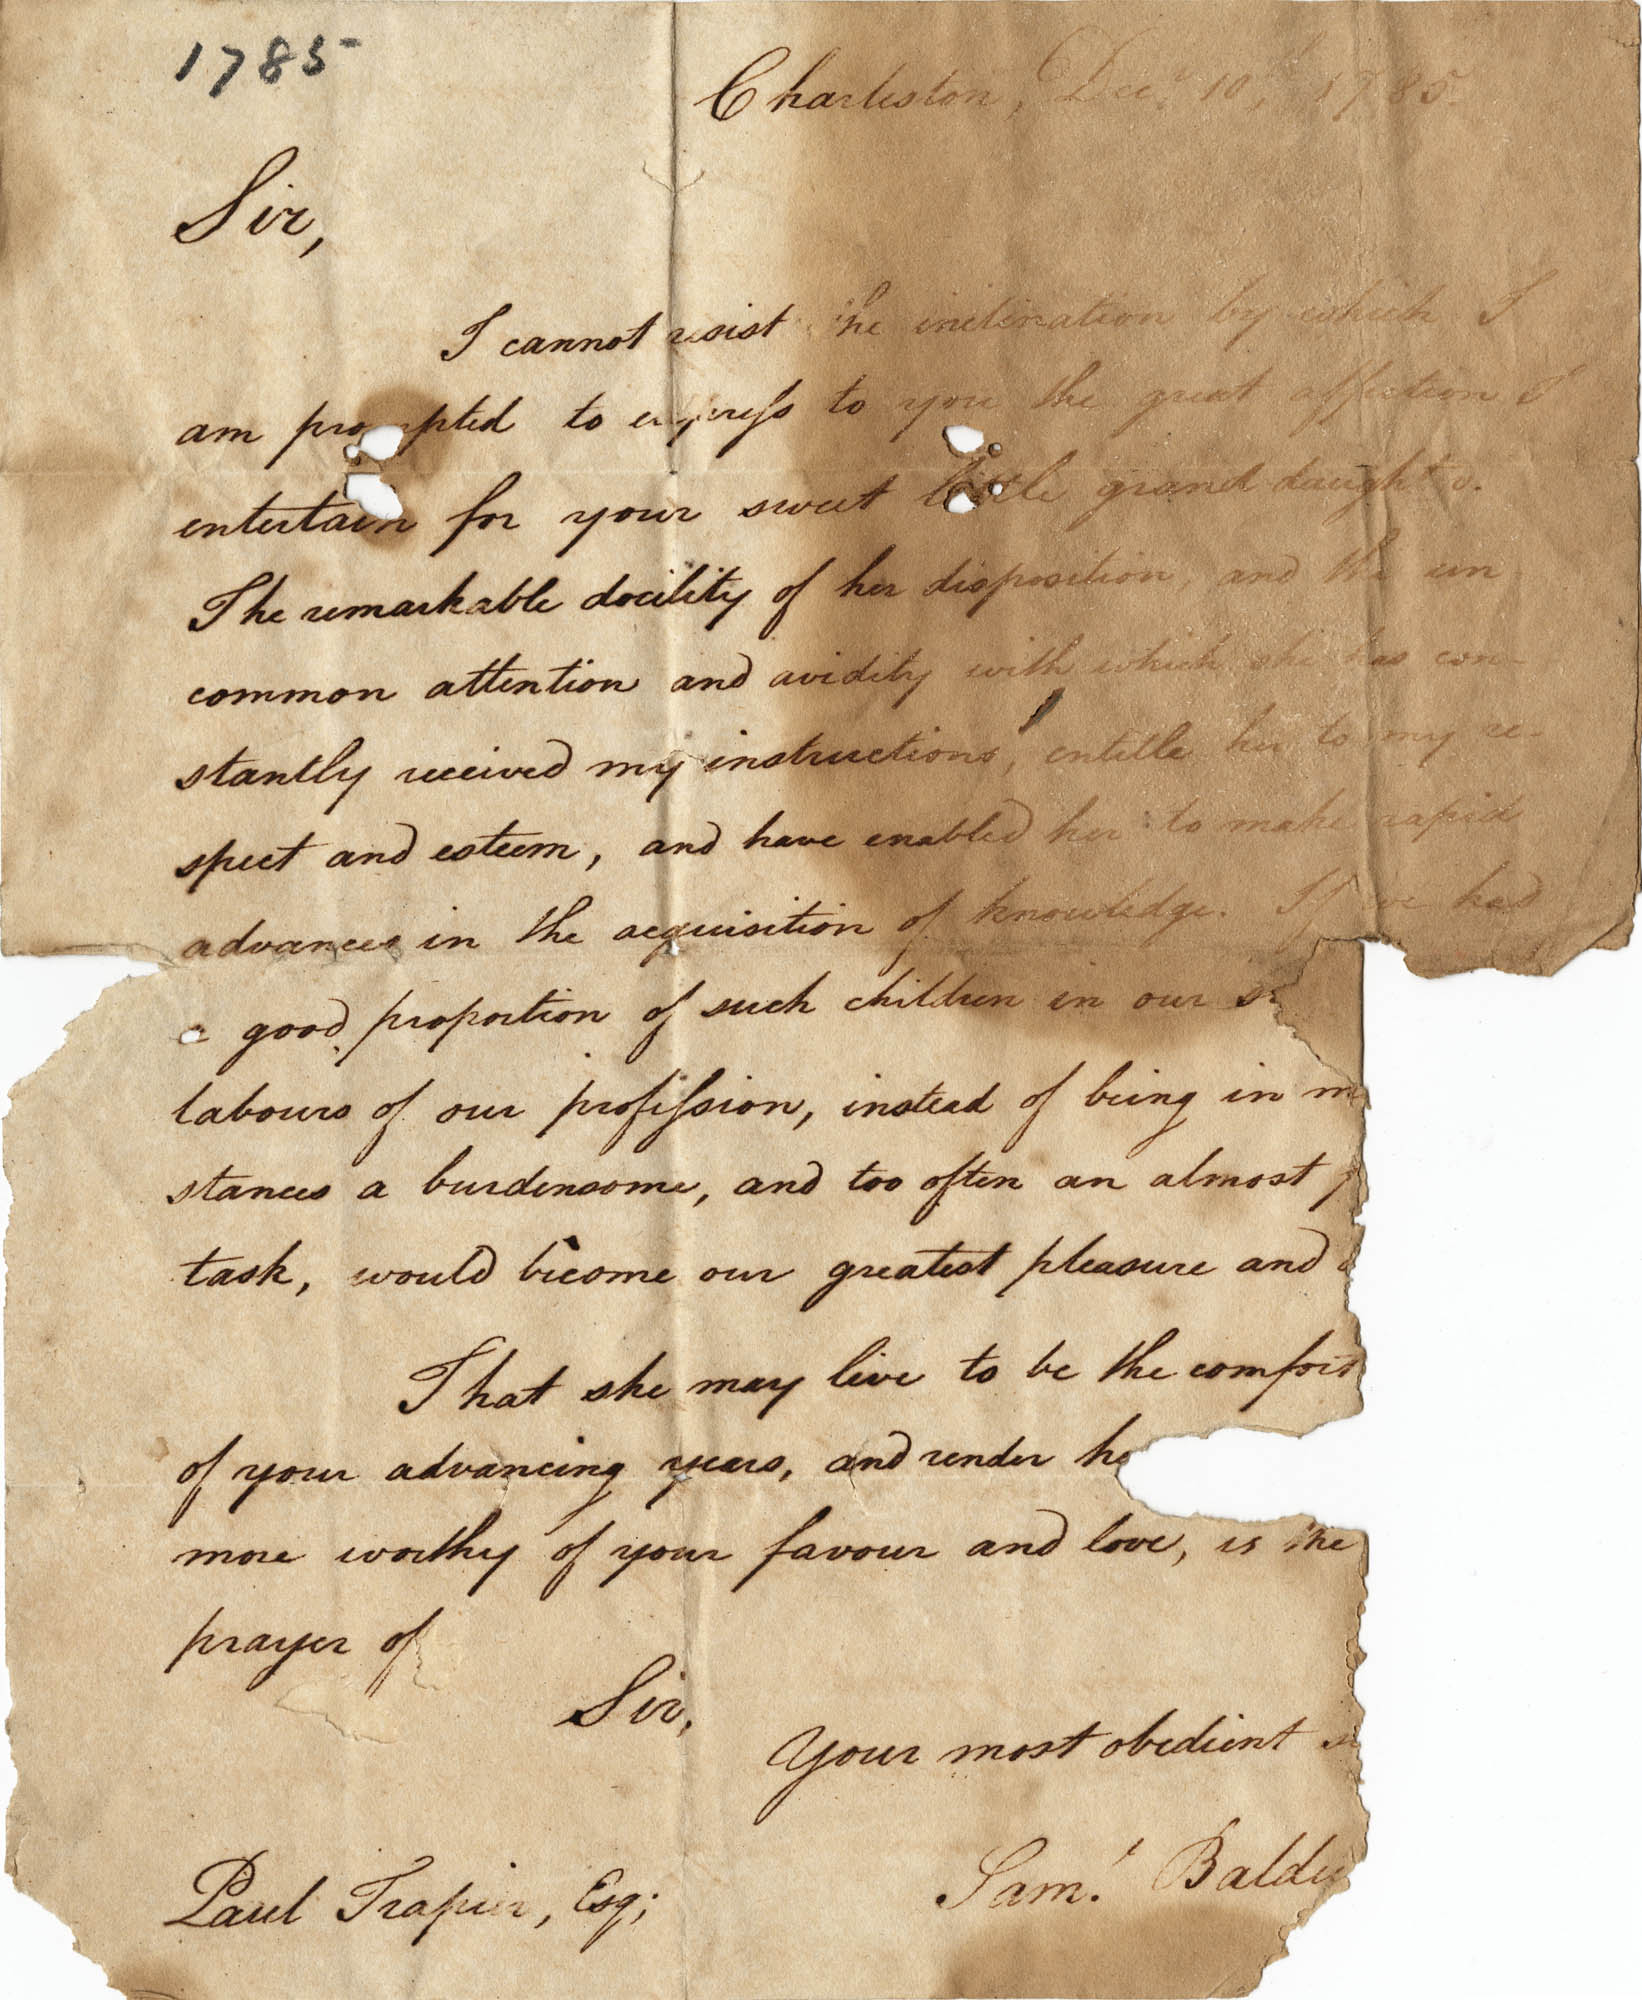 010. Samuel Baldwin to Paul Trapier -- December 10, 1785